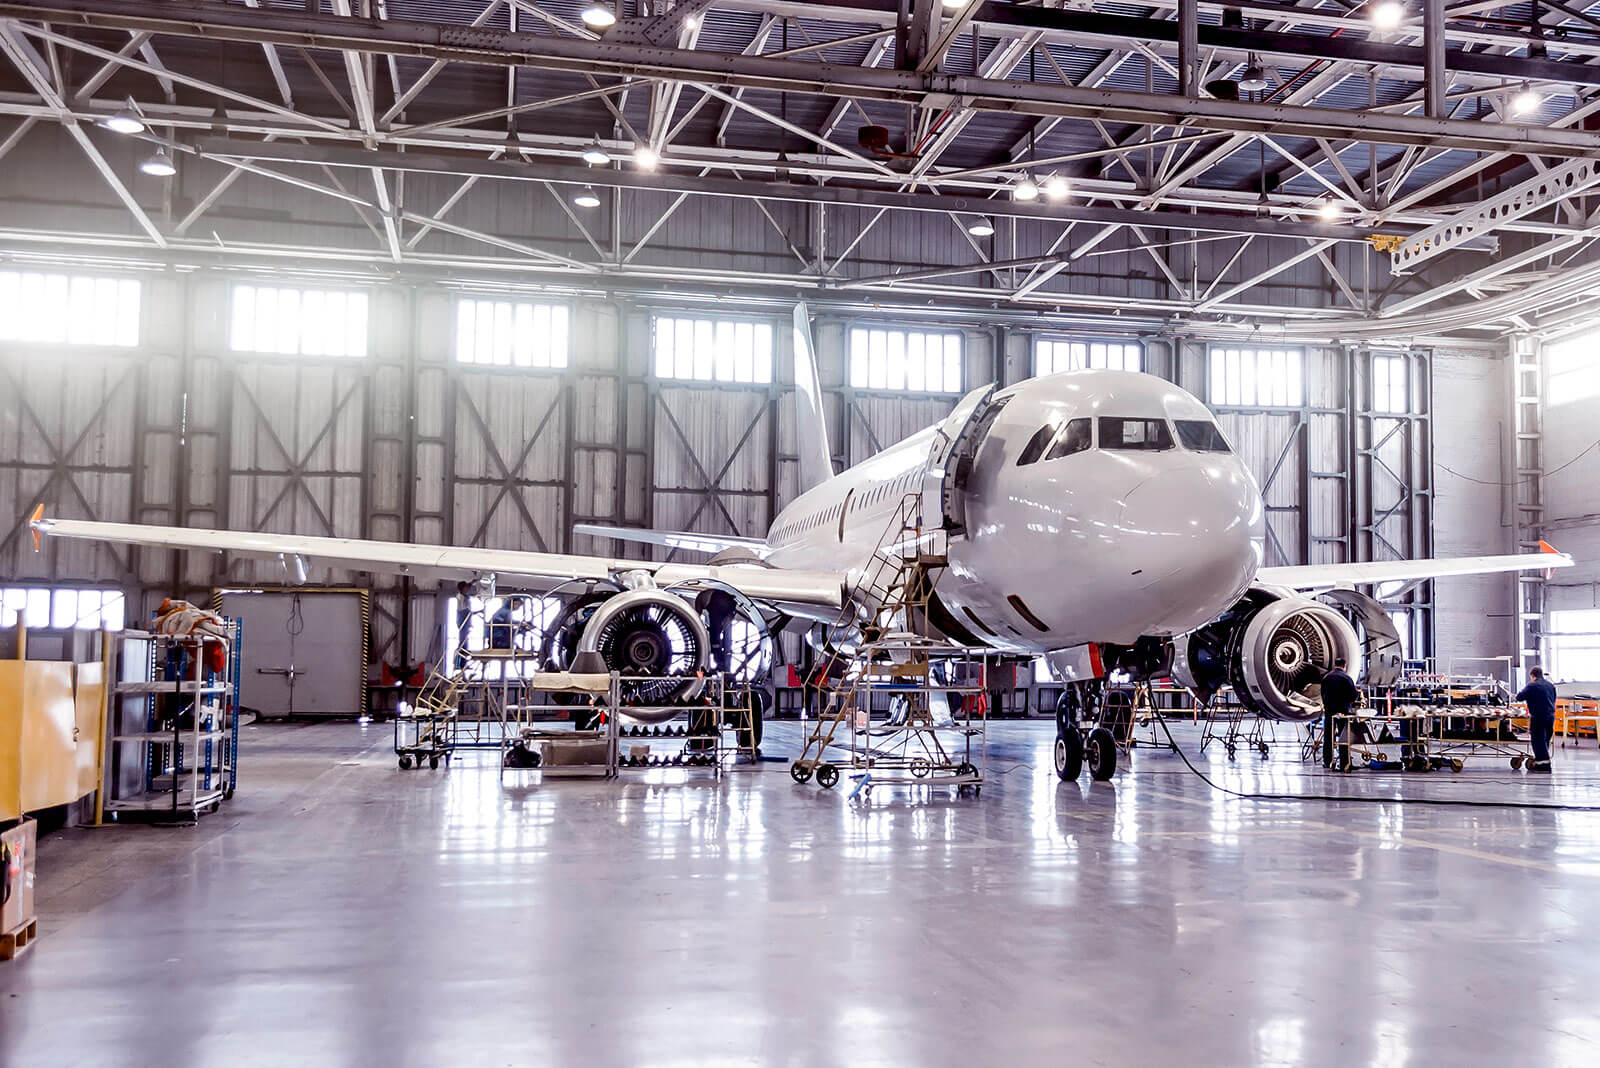 an Airbus airplane in a hangar